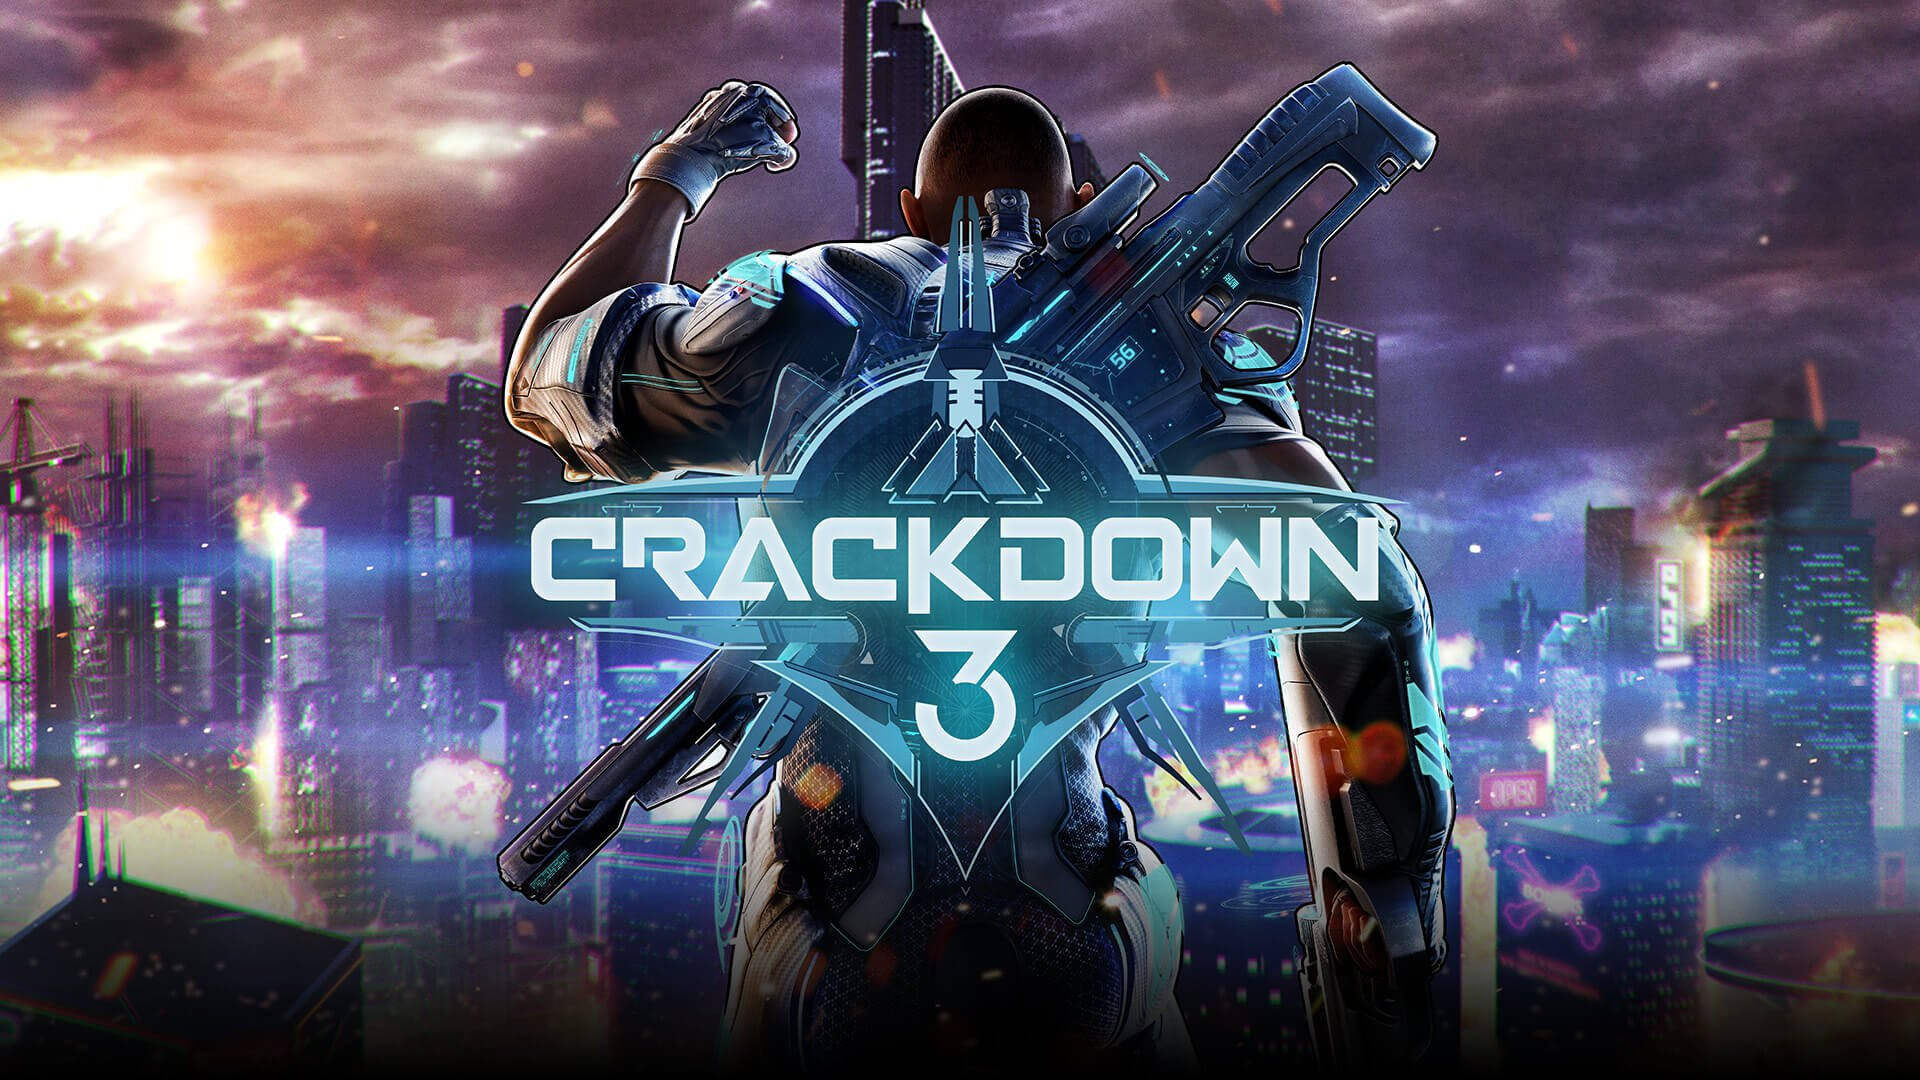 Crackdown 3 pre-order cancellation was an Amazon error, according to Microsoft screenshot